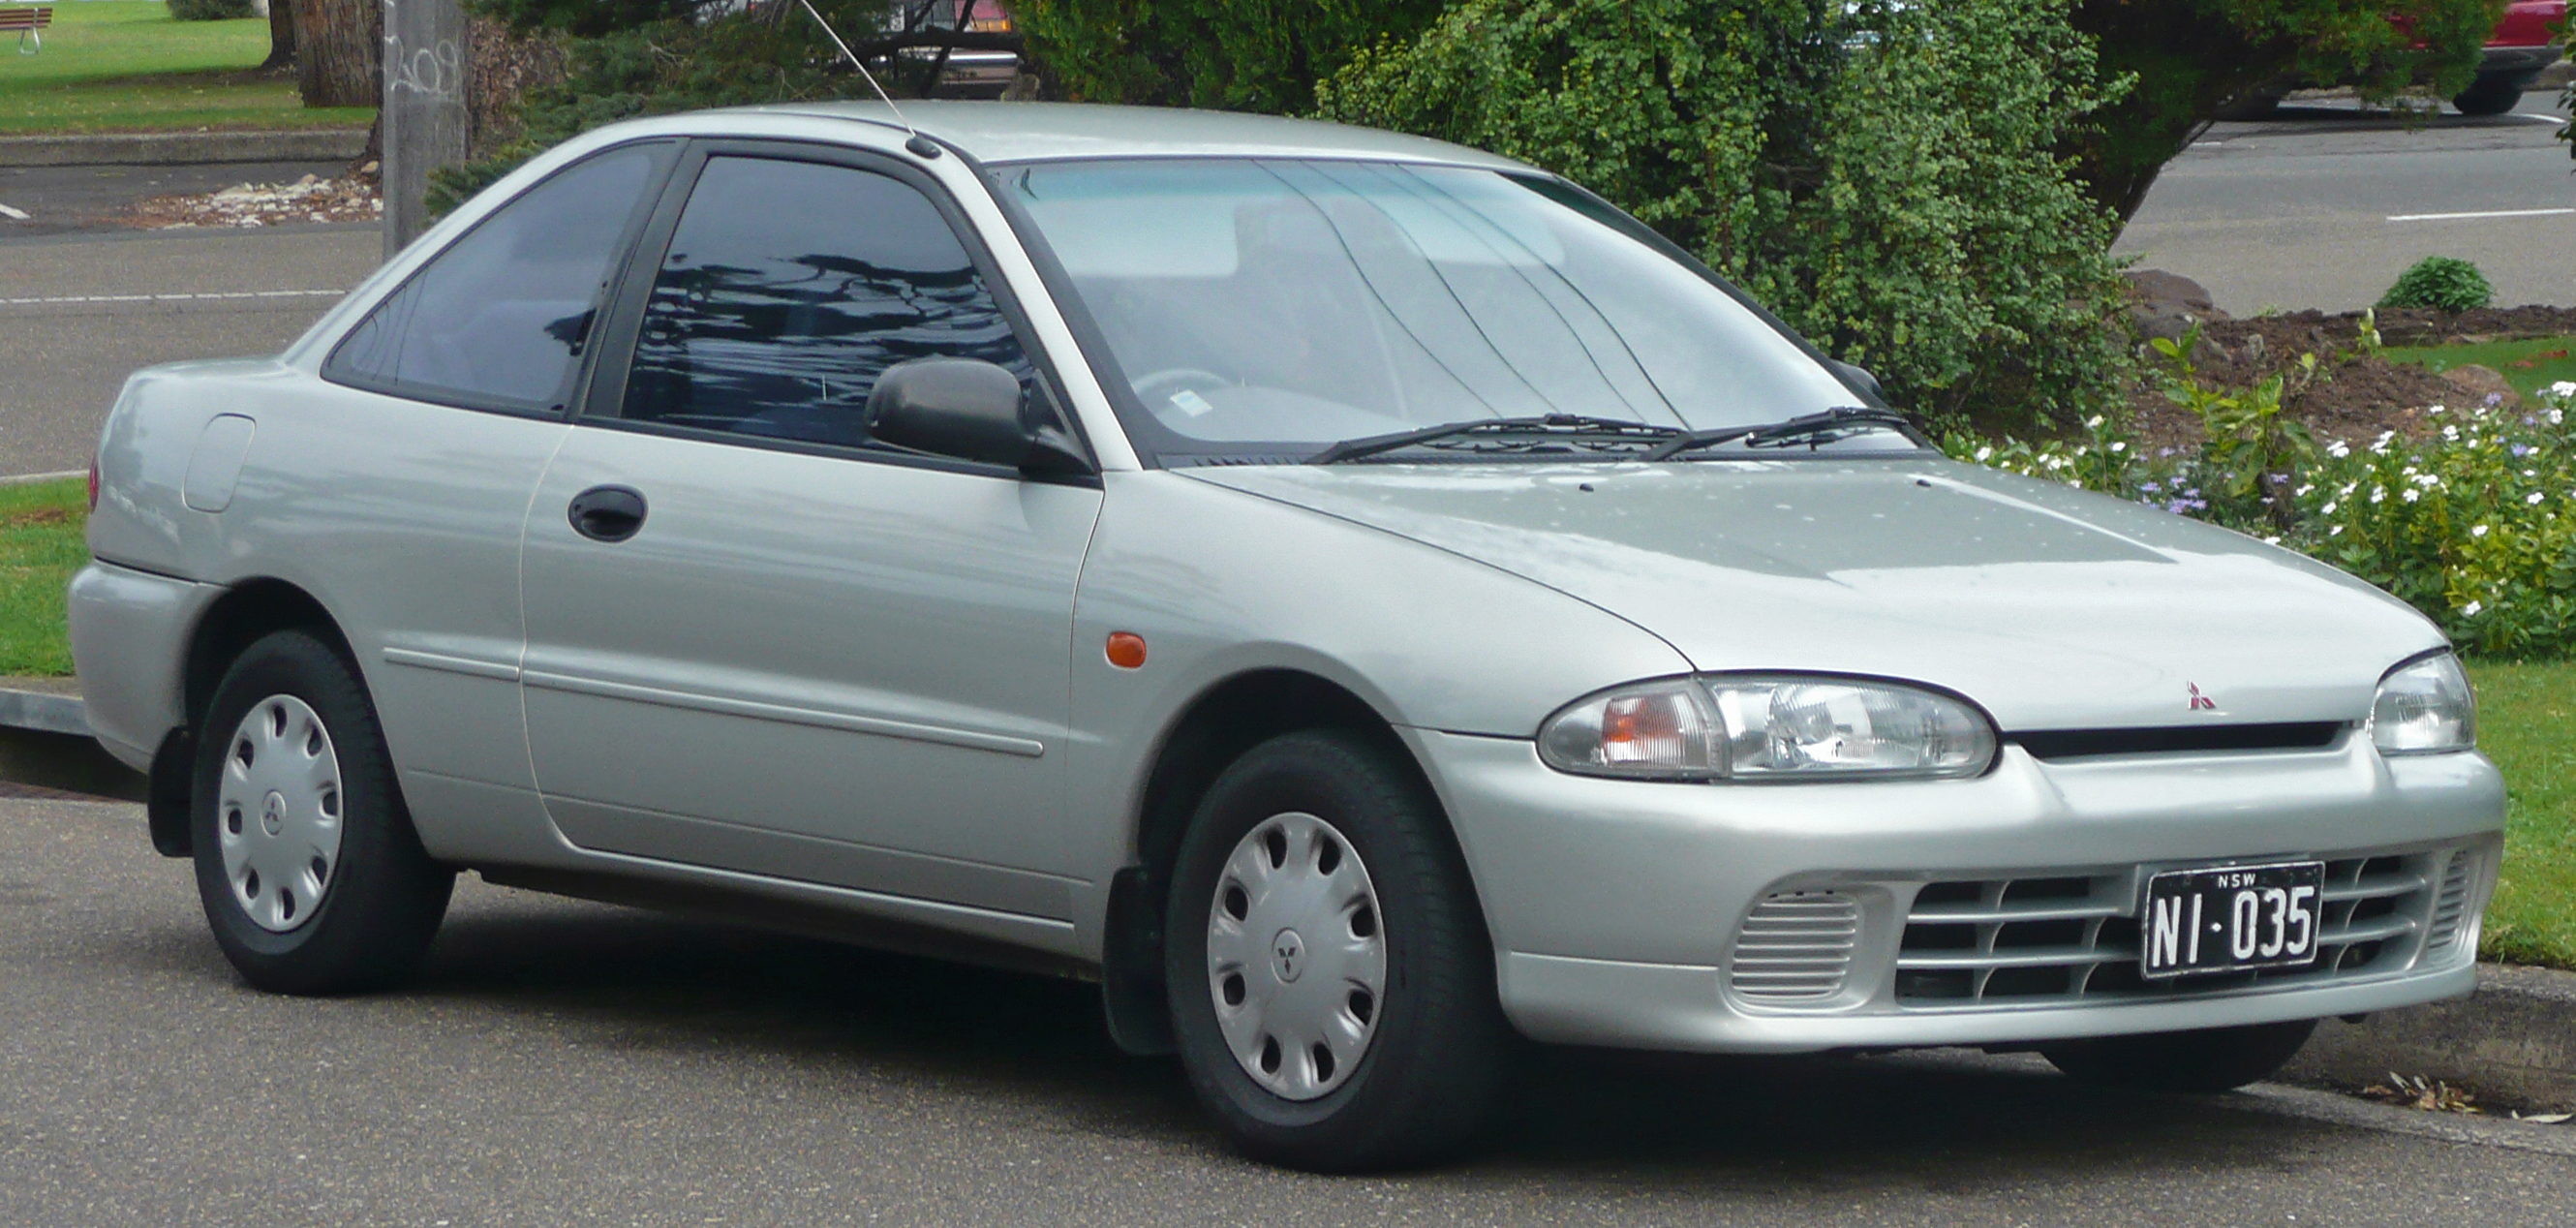 File:1995-1996 Mitsubishi Lancer (CC) GLXi coupe 01.jpg - Wikimedia Commons